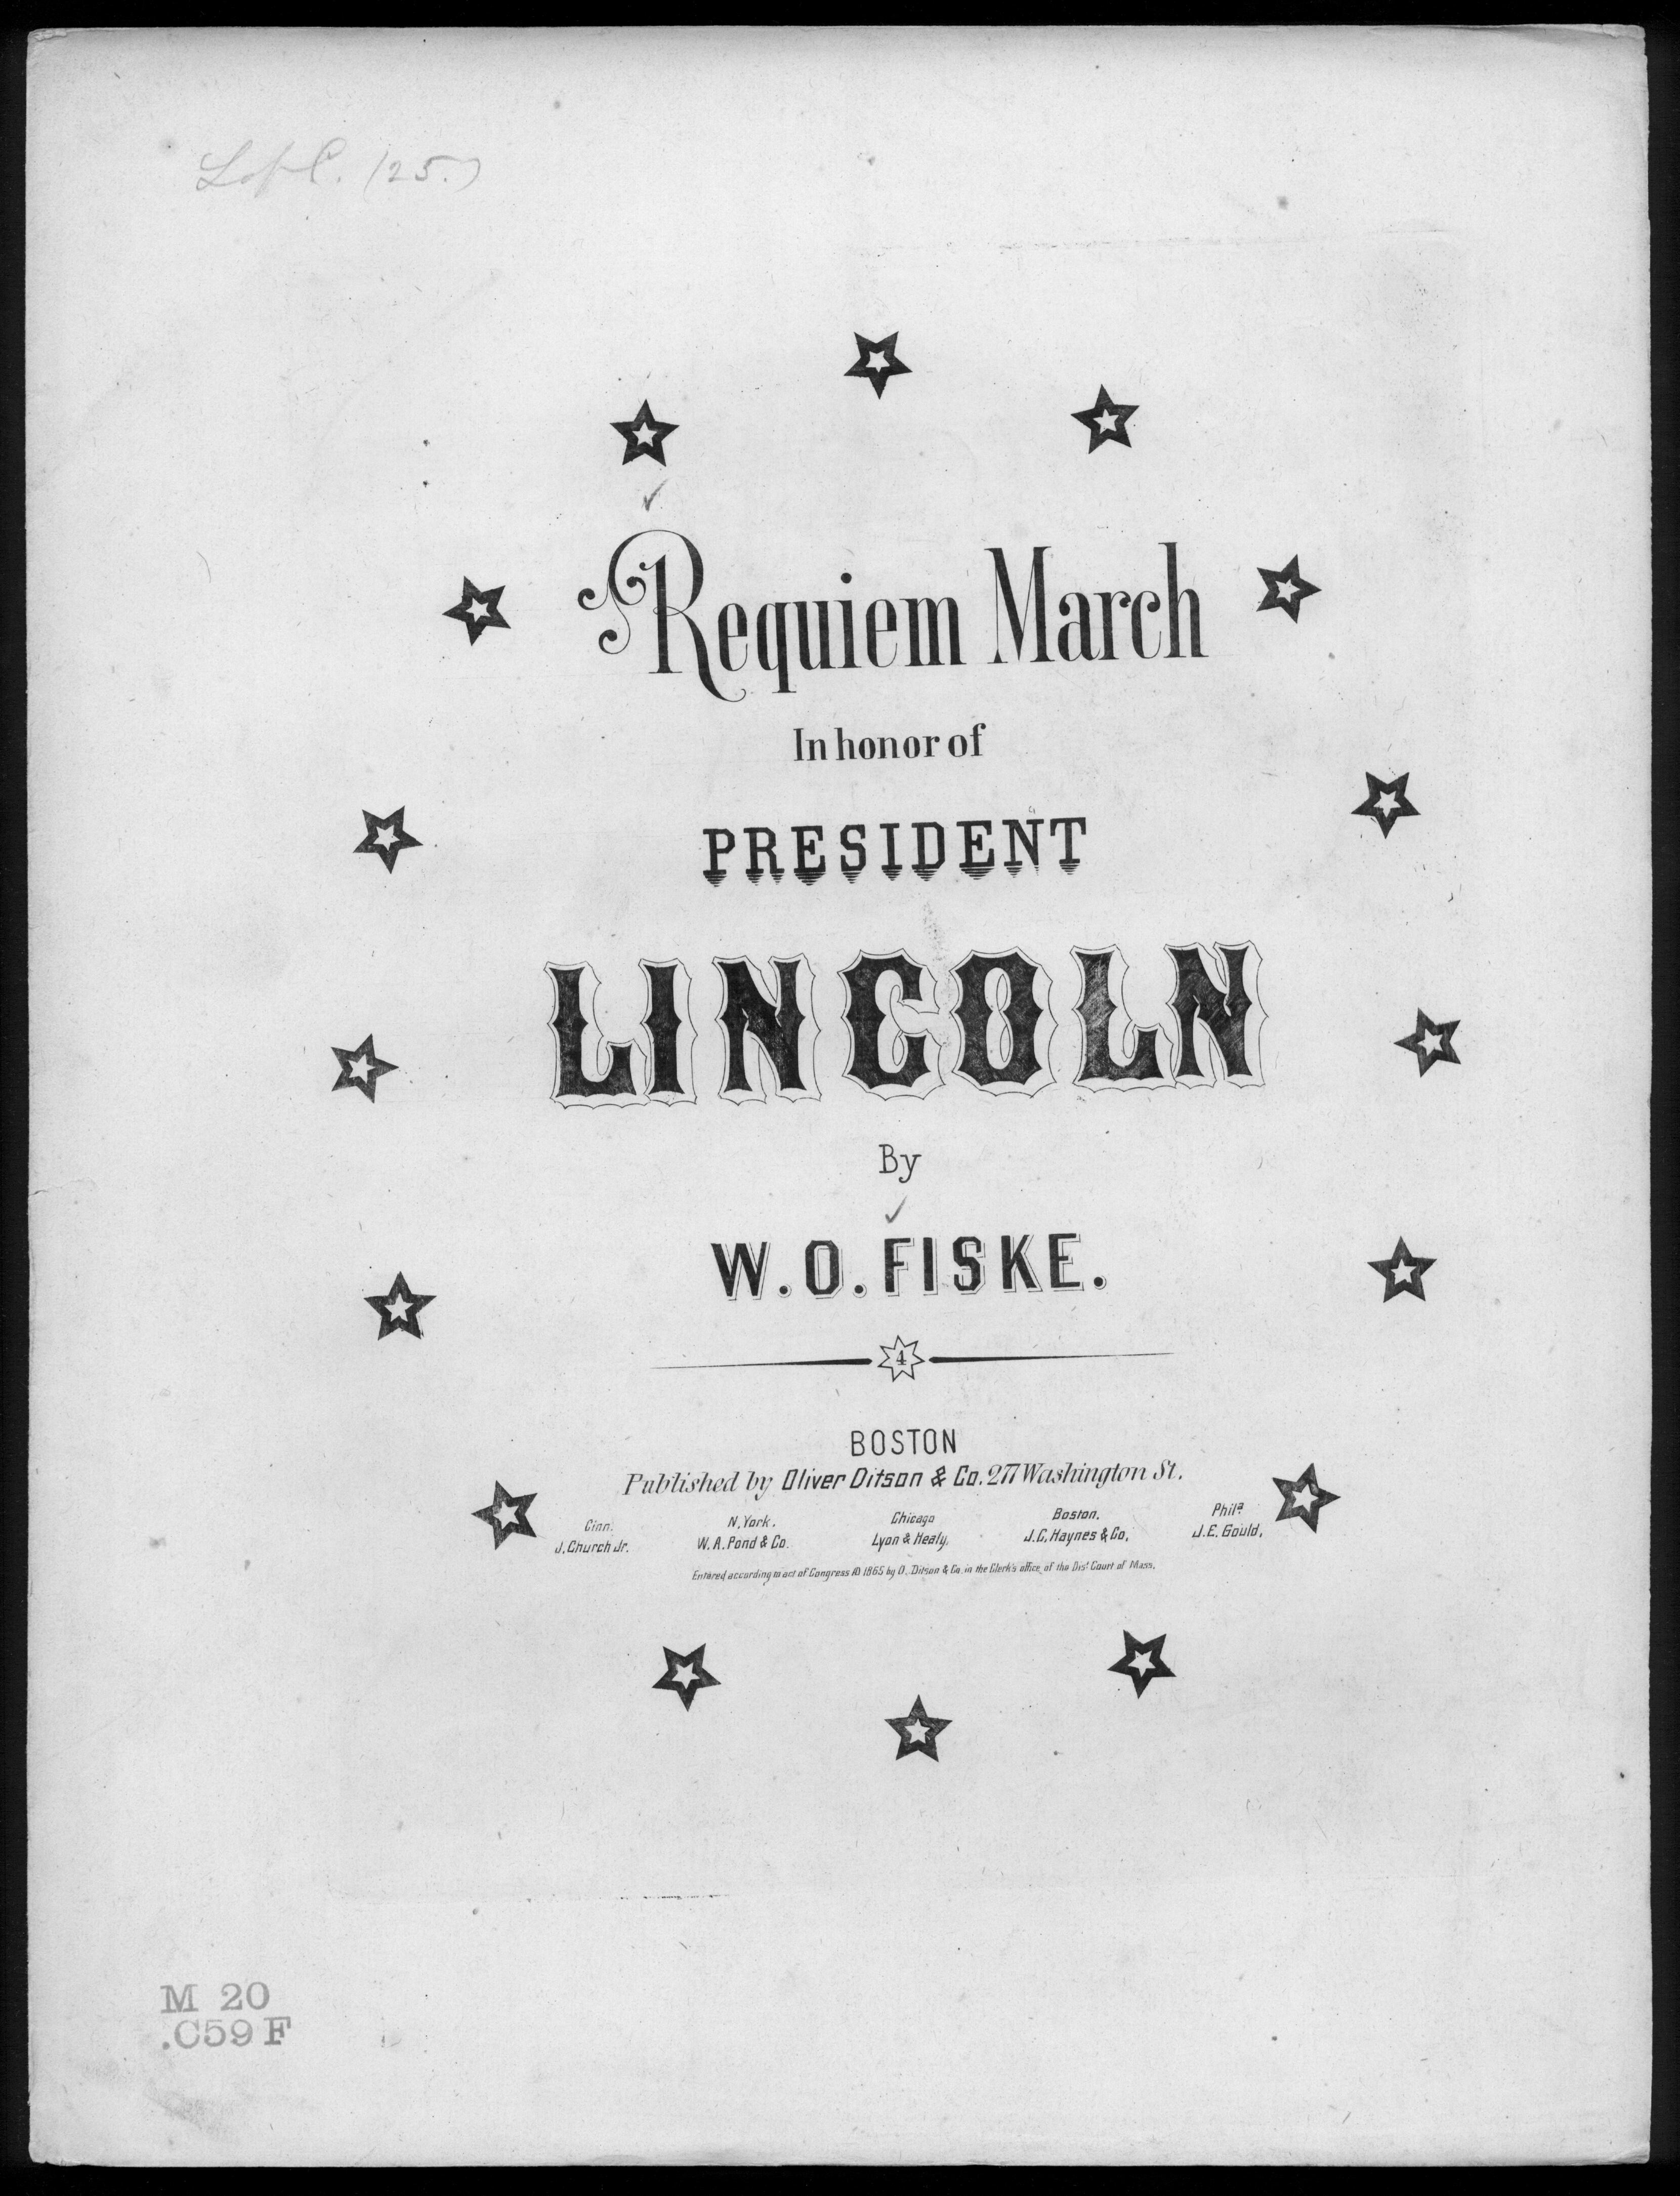 Requiem march in honor of President Lincoln